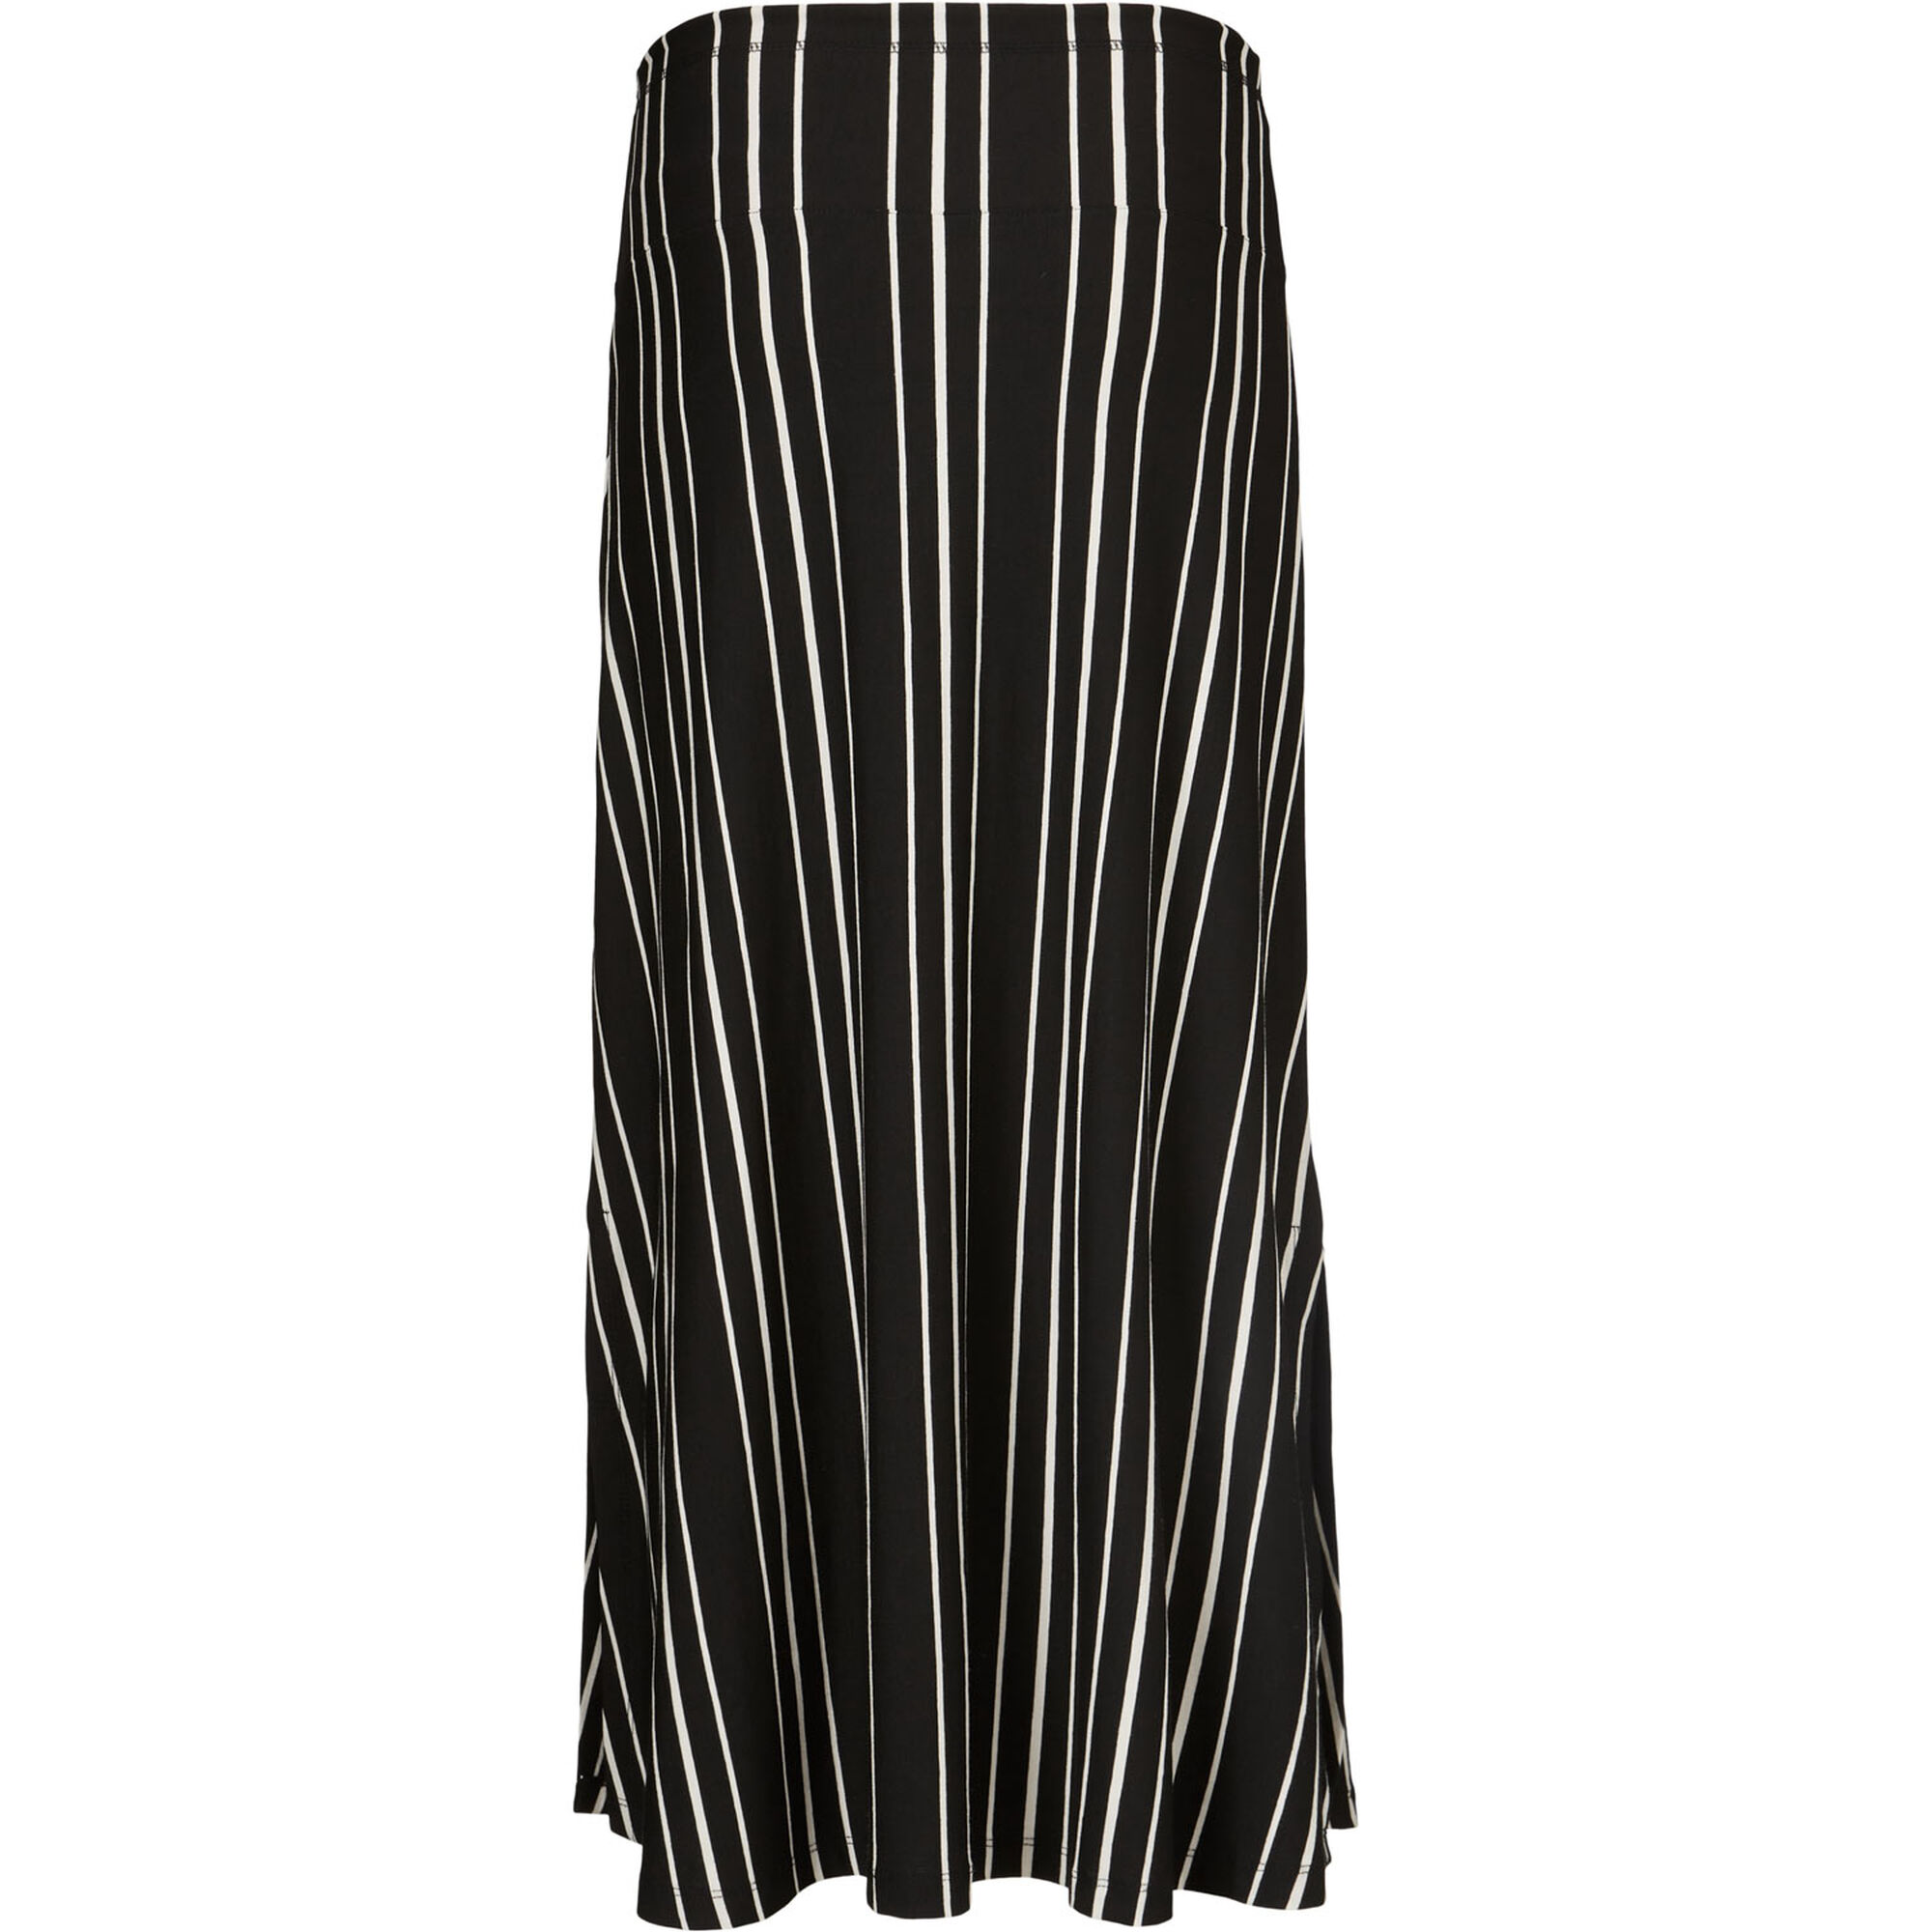 SANNA SKIRT, Black, hi-res